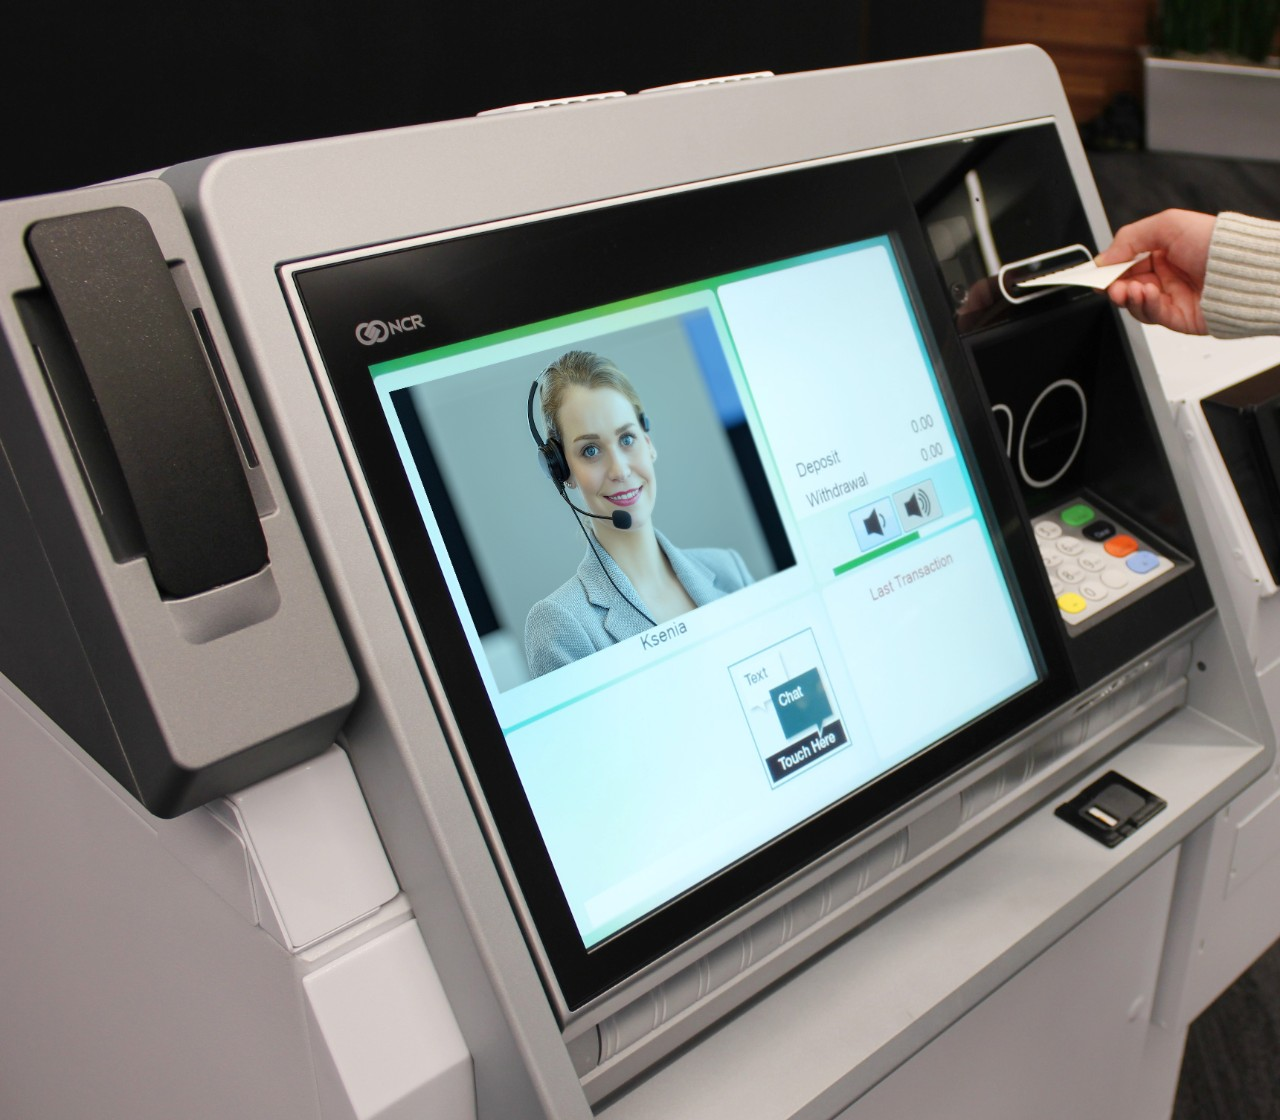 Screen on NCR ATM displaying Interactive Teller for user